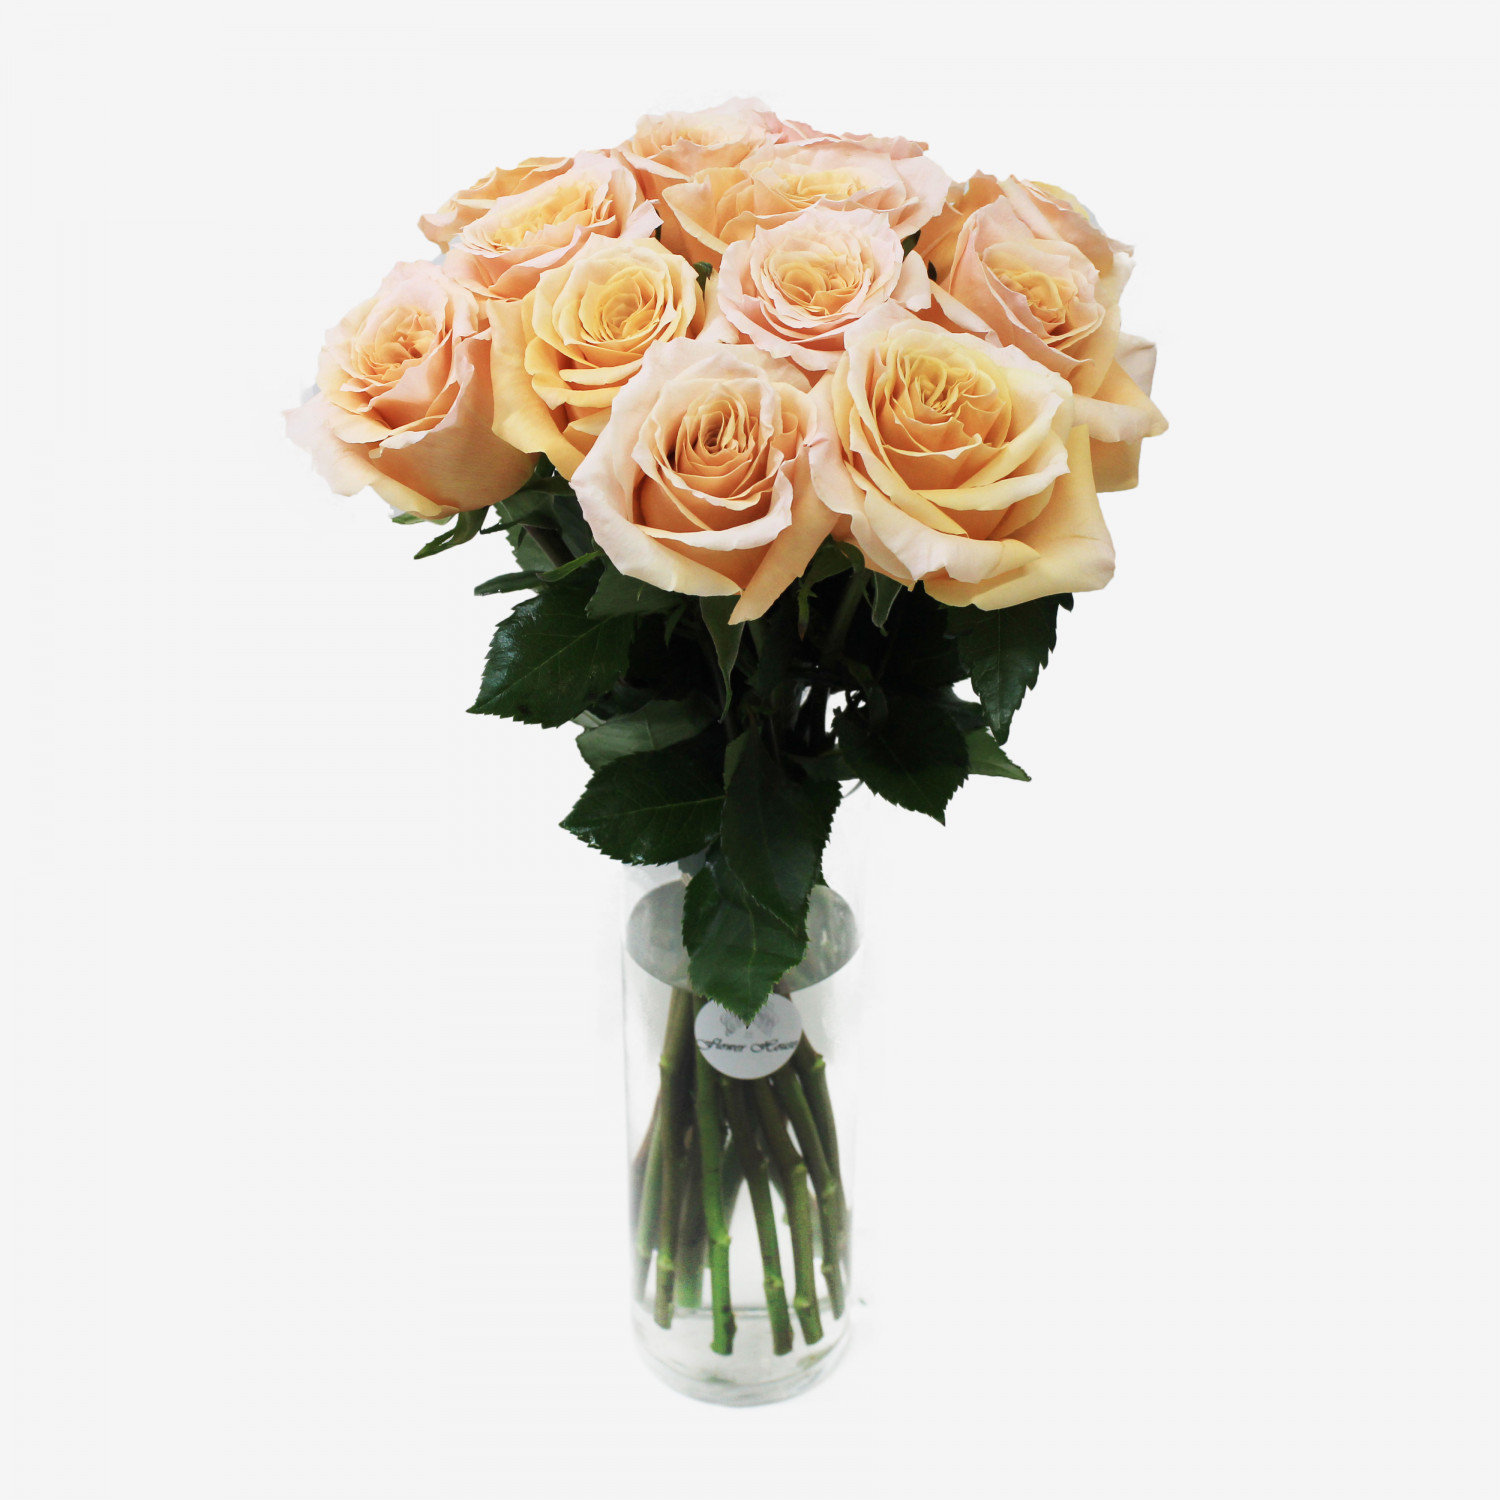 12 Peach Shimmer Rose Bouquet